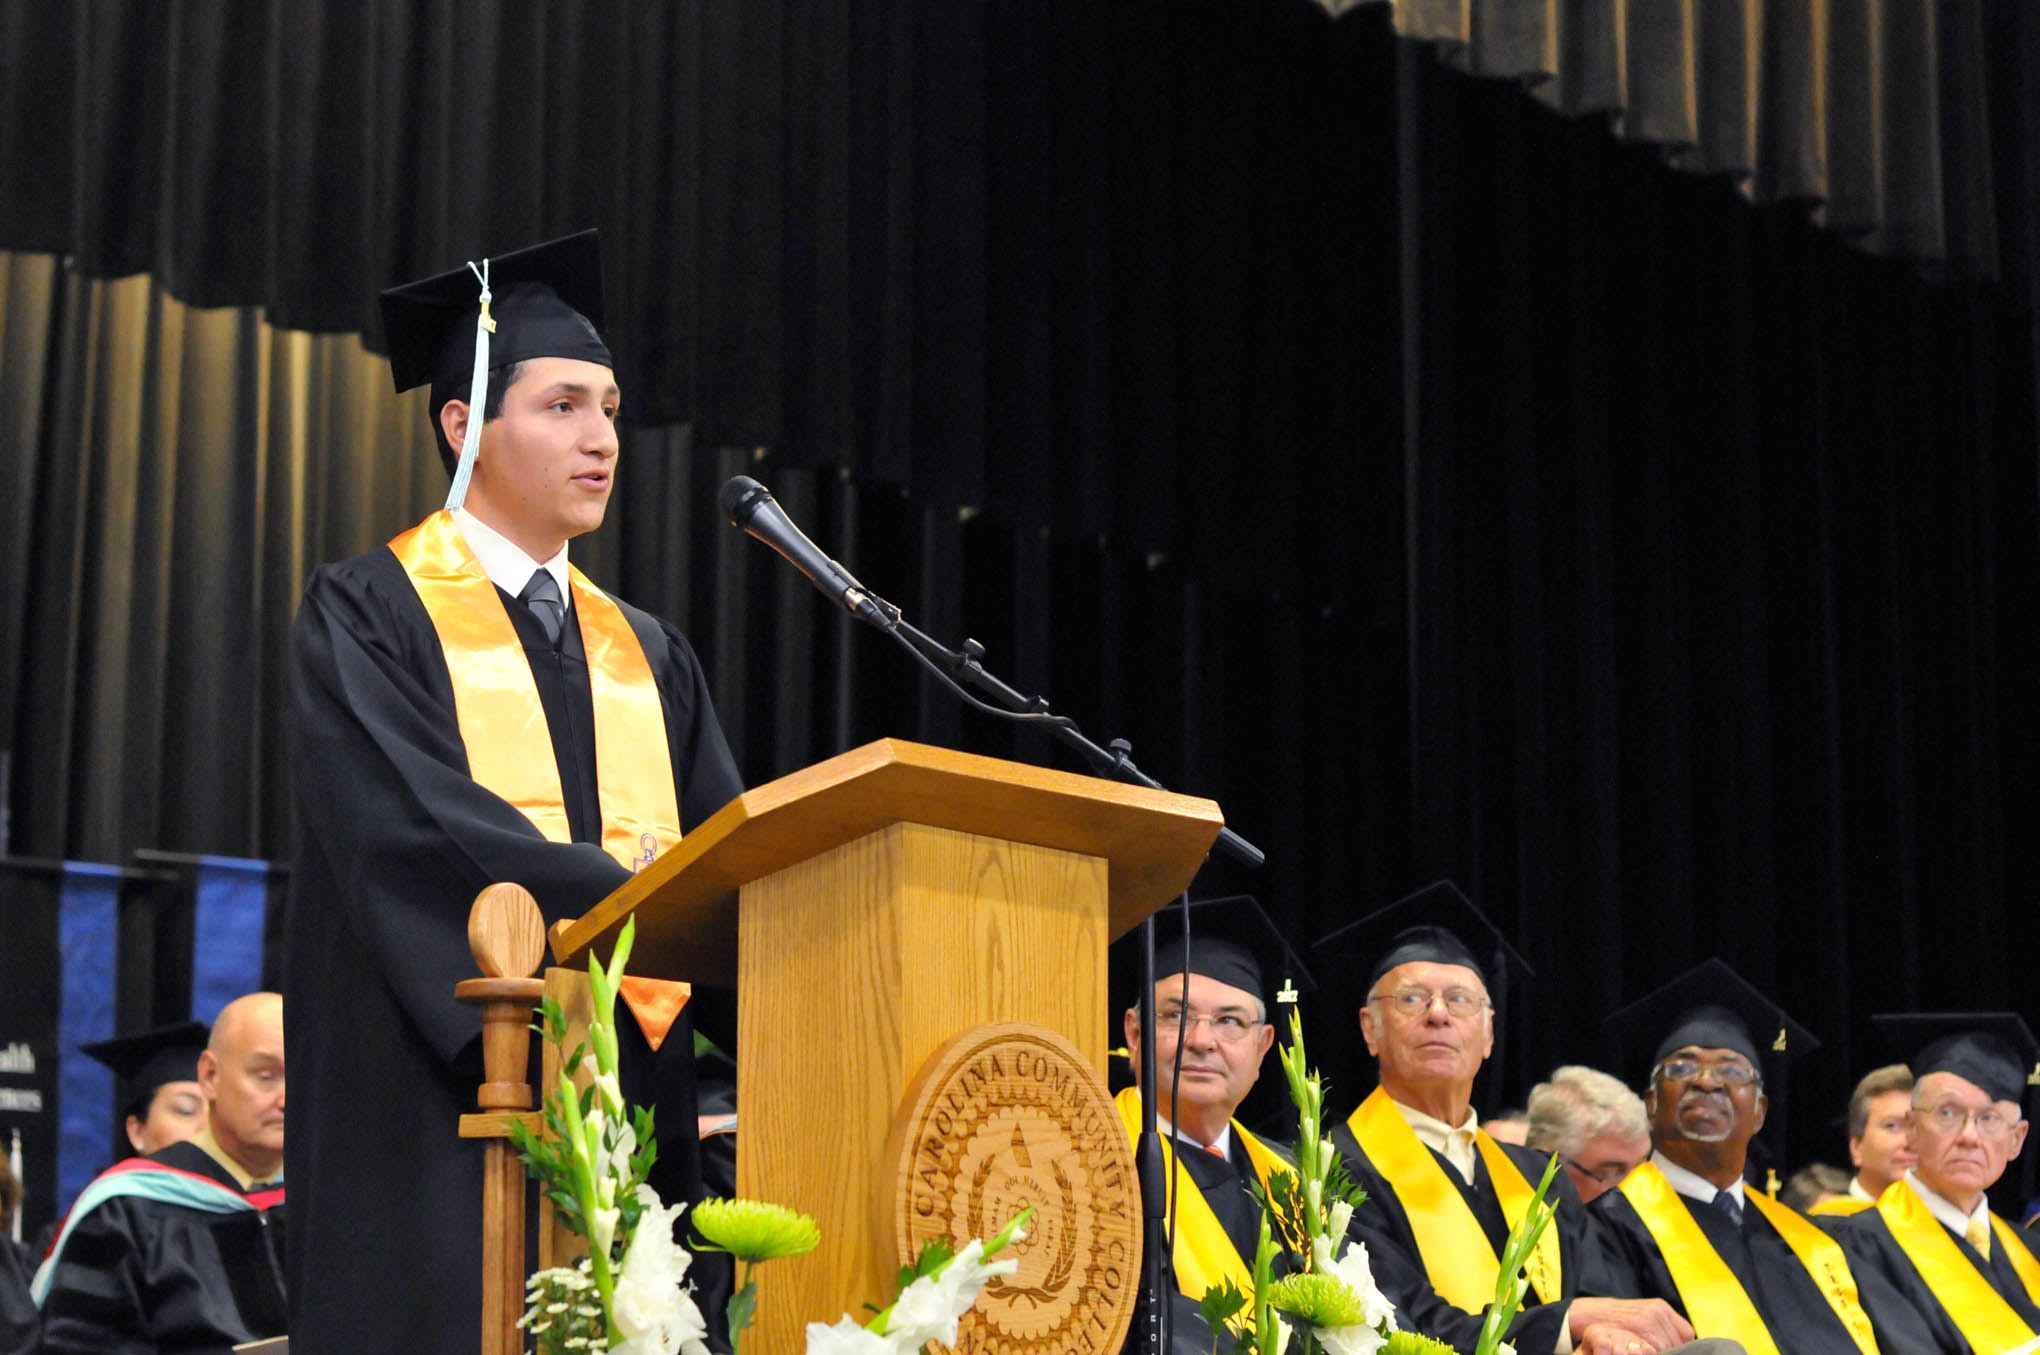 Click to enlarge,  Noel Martinez of Lee County (Associate in Arts) was a student speaker at the Central Carolina Community College 11:30 a.m. commencement exercises held on May 11 at the Dennis A. Wicker Civic Center in Sanford.